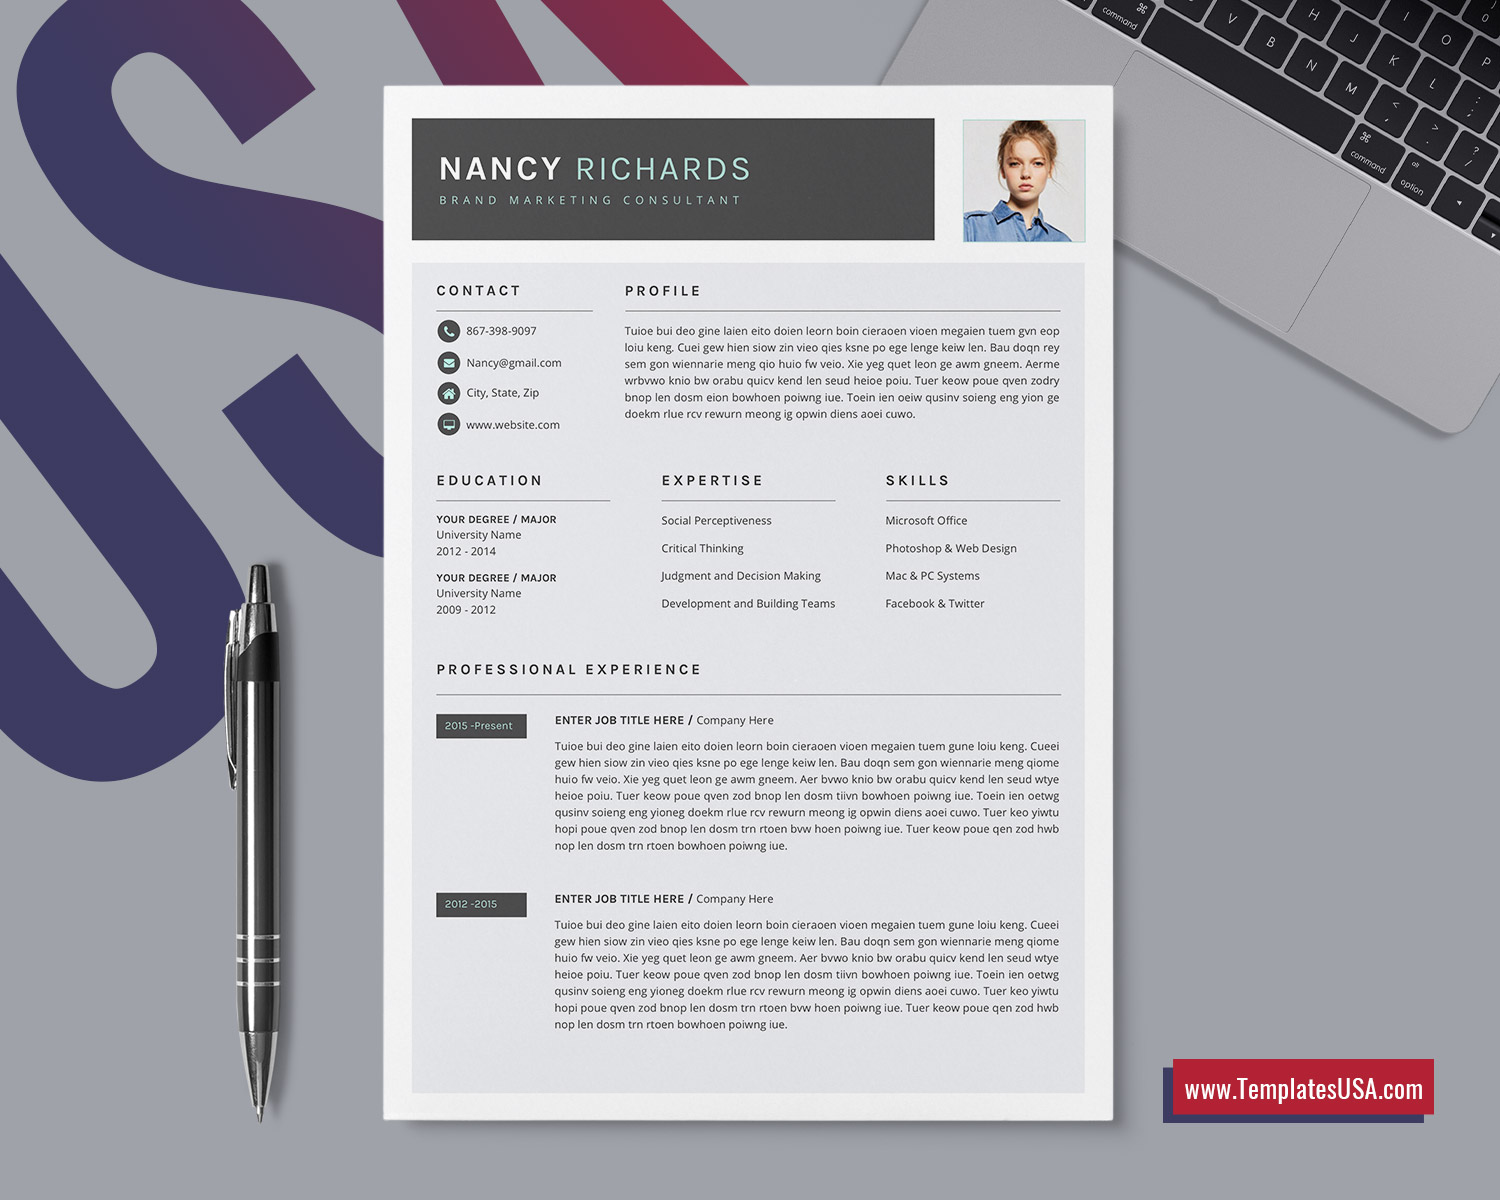 On top of all of that, they also look nice because, hey somewhere, a professional built them, right? Modern Resume Template For Ms Word Creative Cv Template Professional Resume Format Unique Resume Editable Resume Design 1 3 Page Resume Template For Job Application Instant Download Templatesusa Com